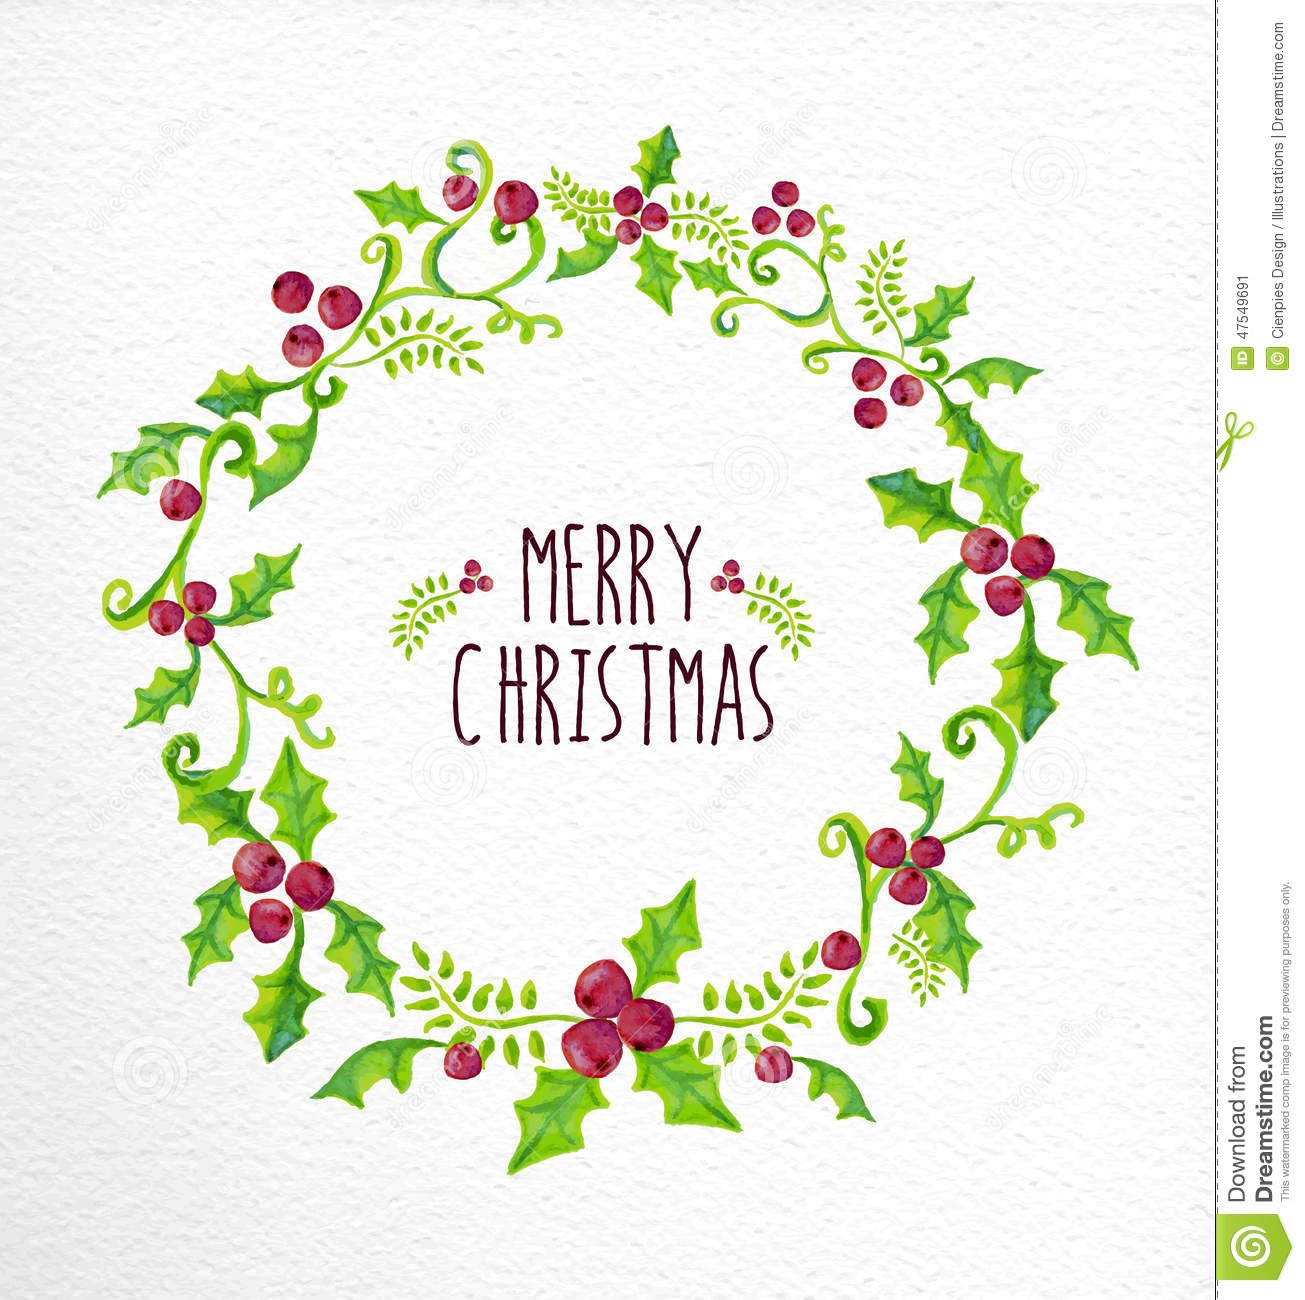 Merry Christmas Watercolor Holly Berry Wreath Card - Download From ...